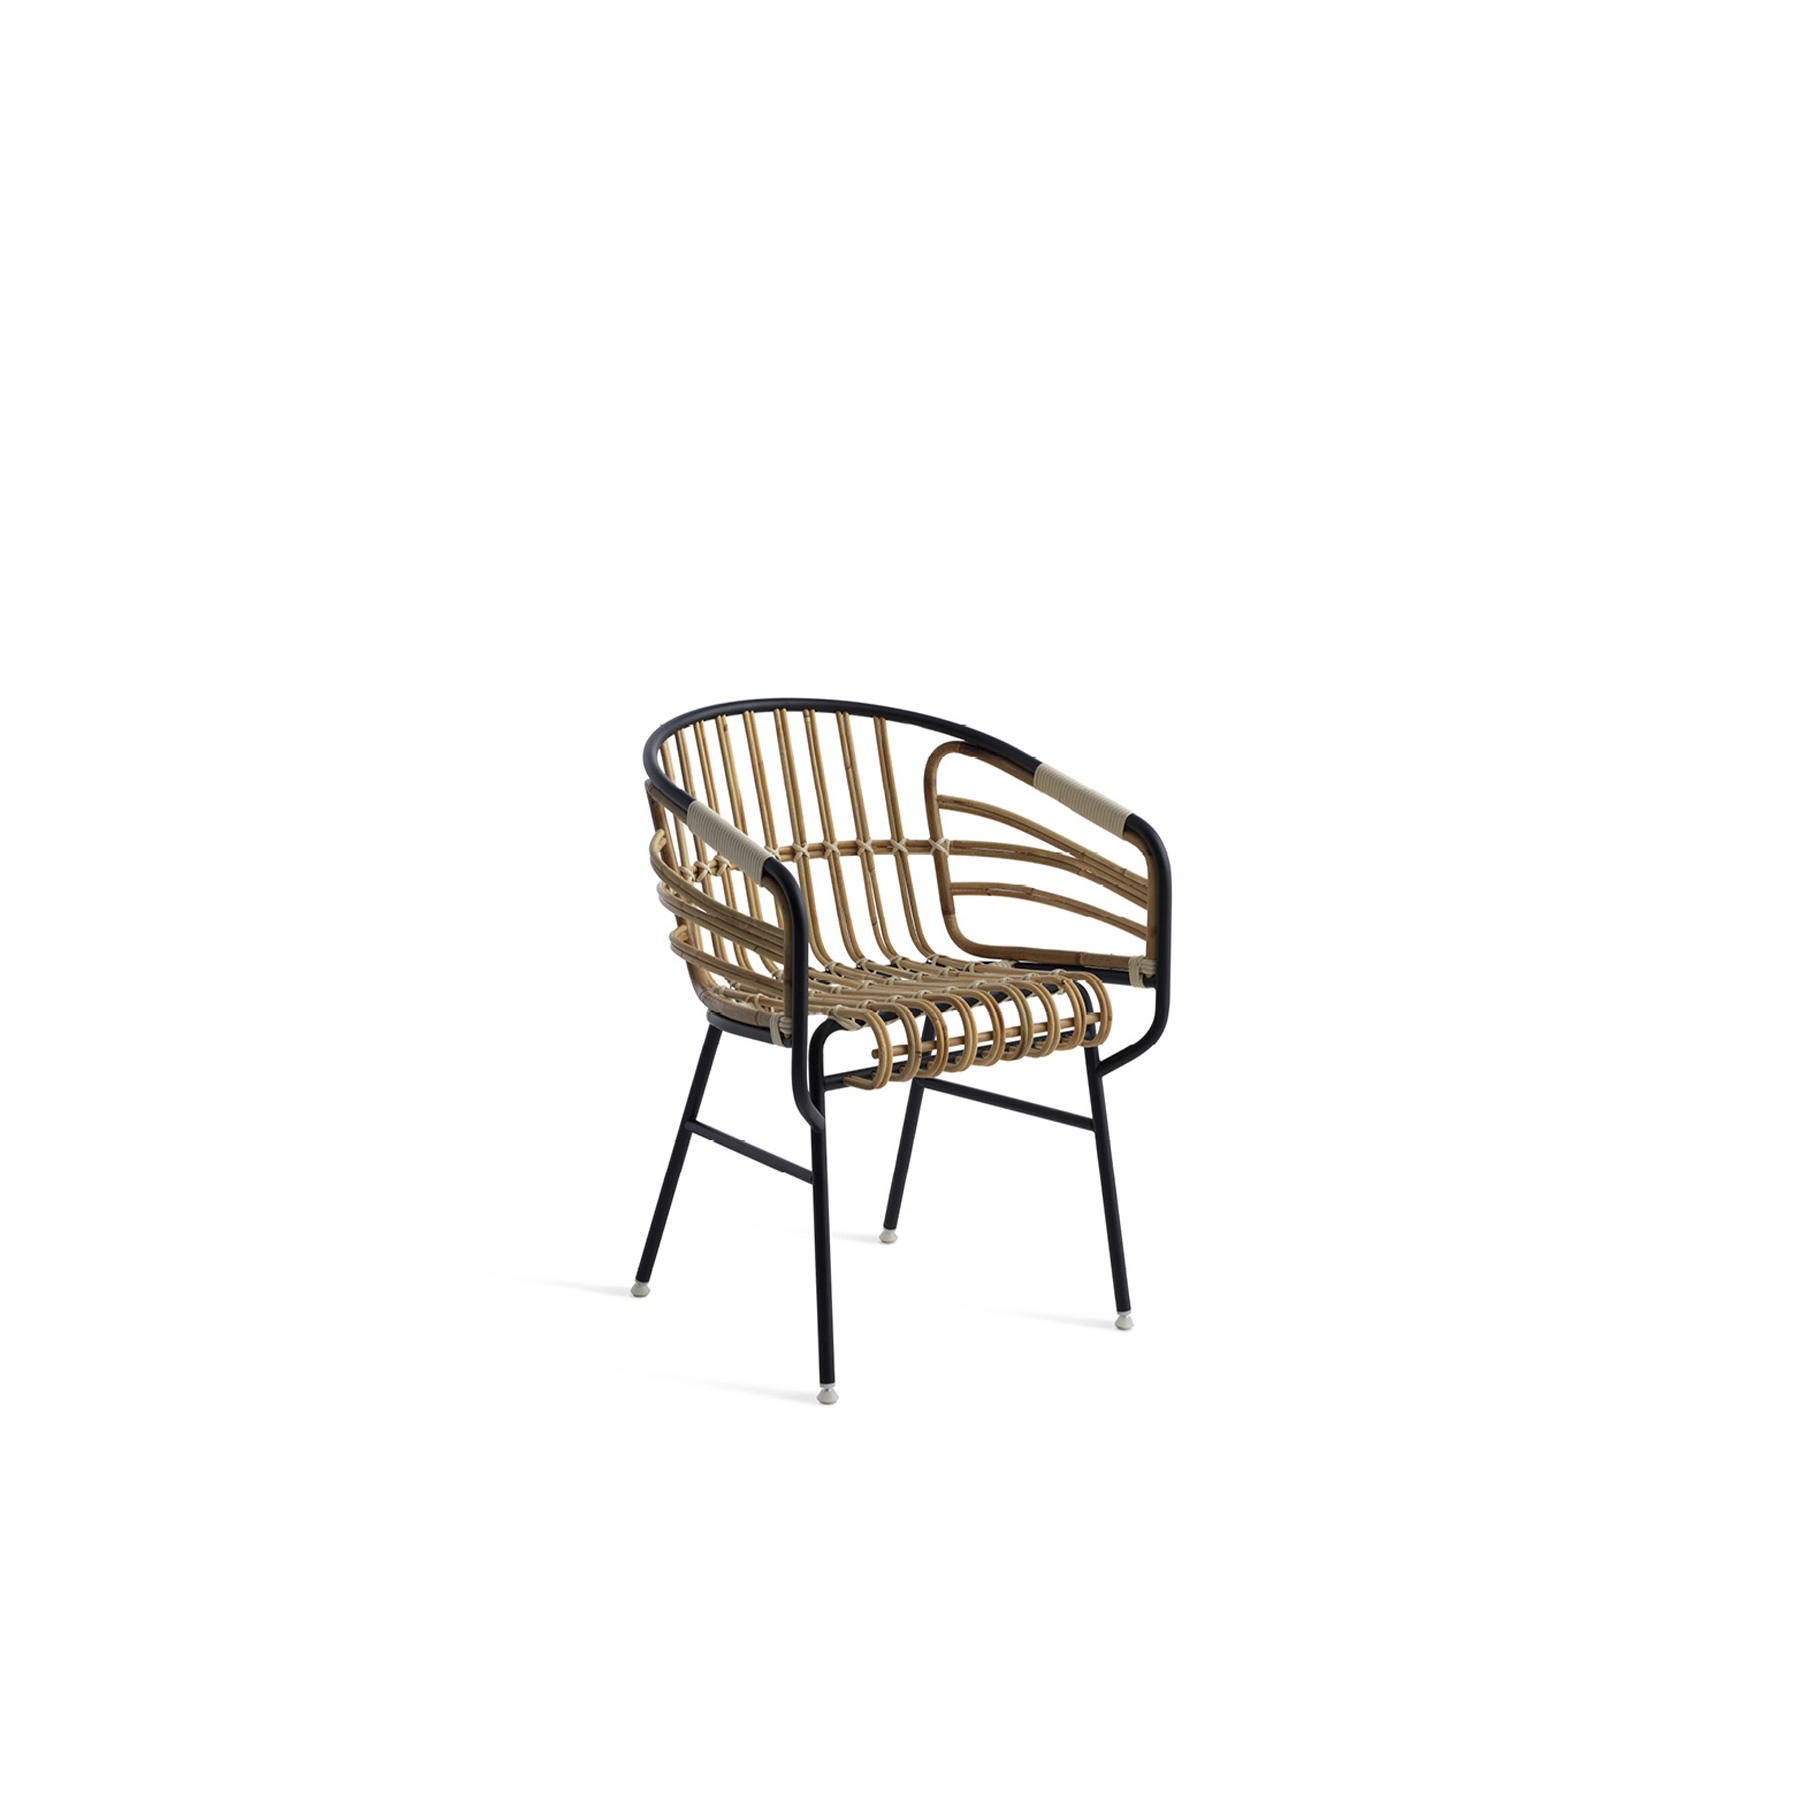 Raphia Rattan Chair - Raphia Rattan is the offspring of a research project into the use of materials and how they can be exploited as furnishings. It is the perfect convergence of modernity and tradition, of technology and craftsmanship. An oxymoron that brings together two of the spirits of production in Italy: the metal industry and the small timehonoured manufacturers of rattan and wicker products. Today, there remain very few firms which conserve the know-how of rattan, where manual skills and craftsmanship combine to insure that every creation is unique. Raphia embodies this history and tradition in a contemporary context.